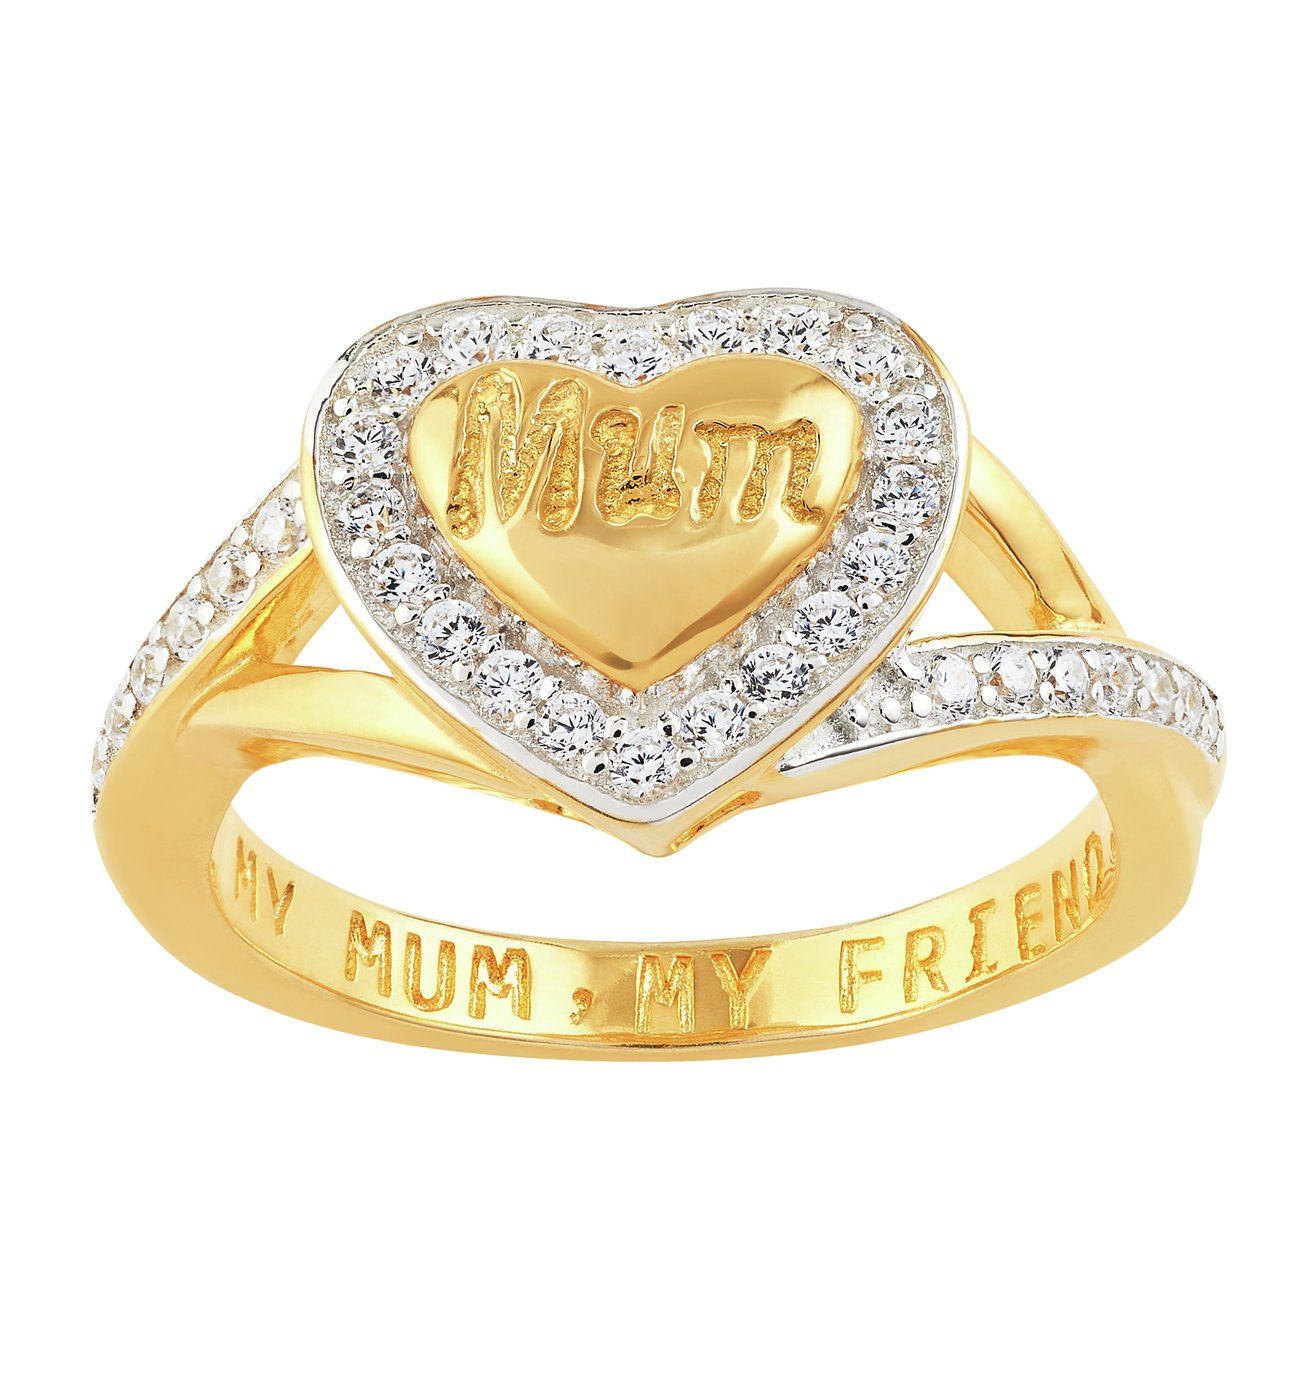 Buy Moon & Back 9ct Gold Plated Silver My Mum My Friend Ring at